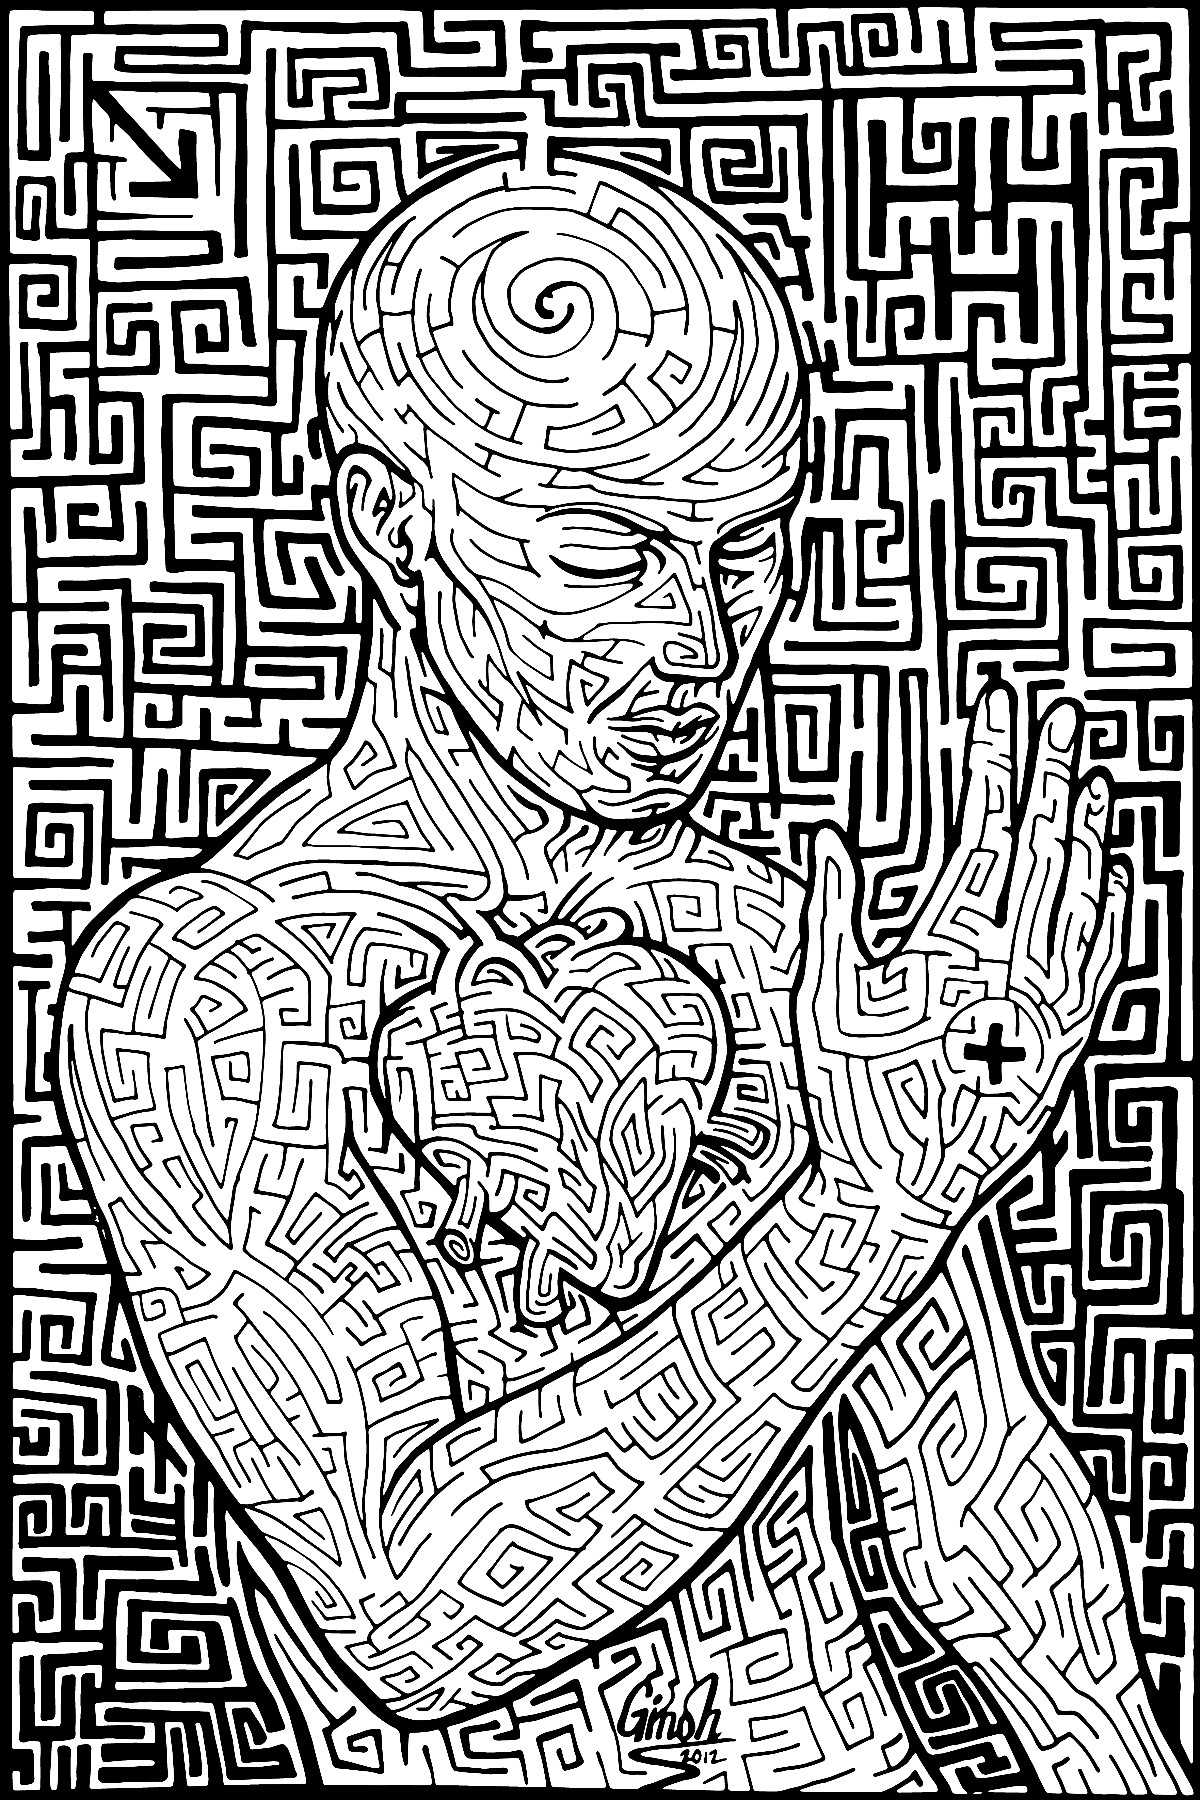 Free coloring pages of really hard mazes